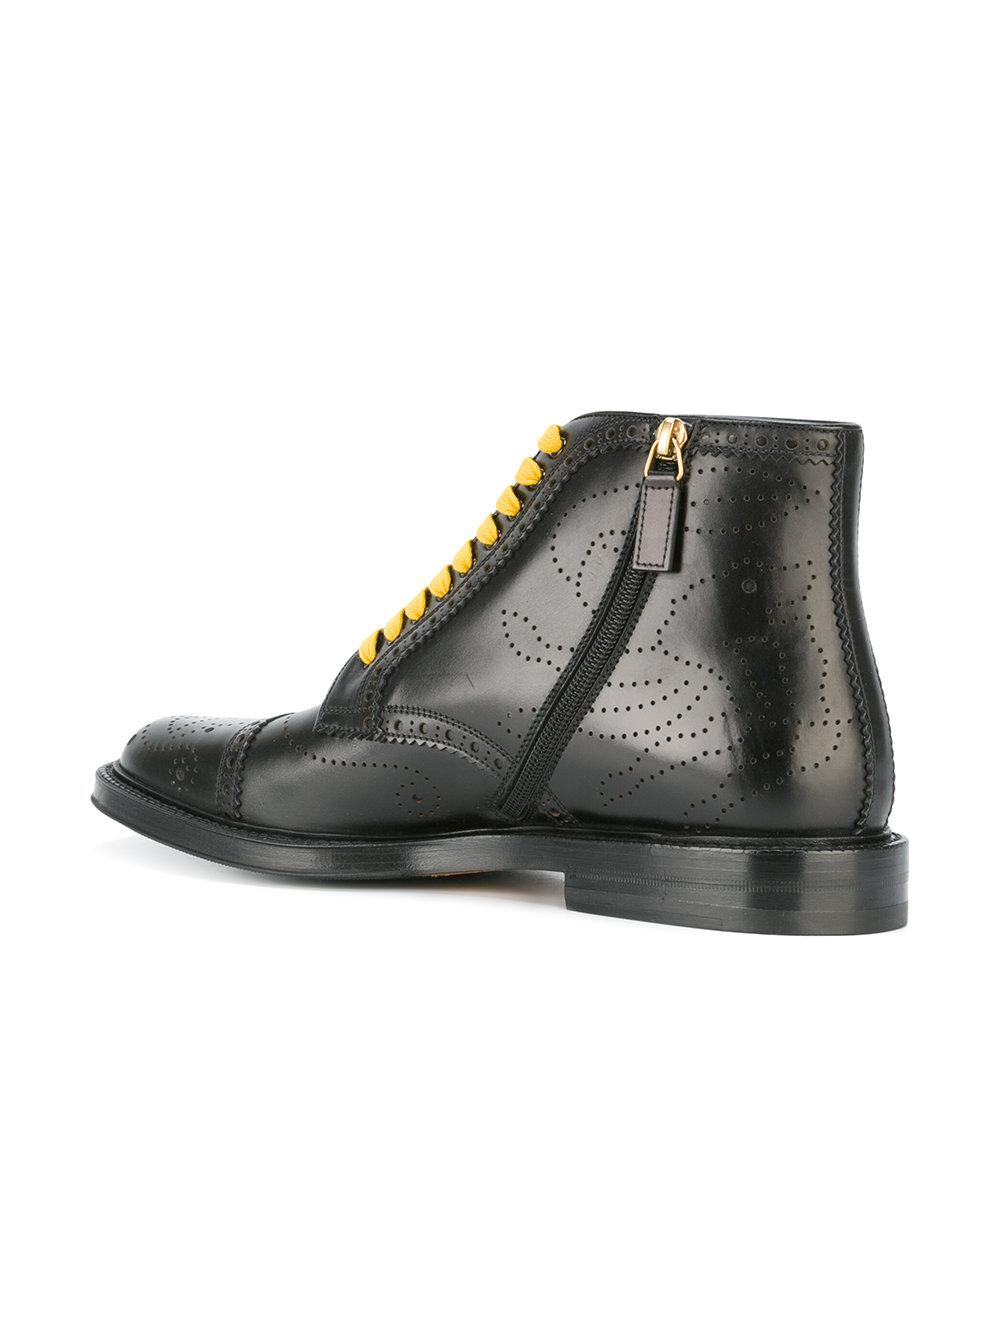 Gucci Contrast Lace Boots In Black For Men Lyst